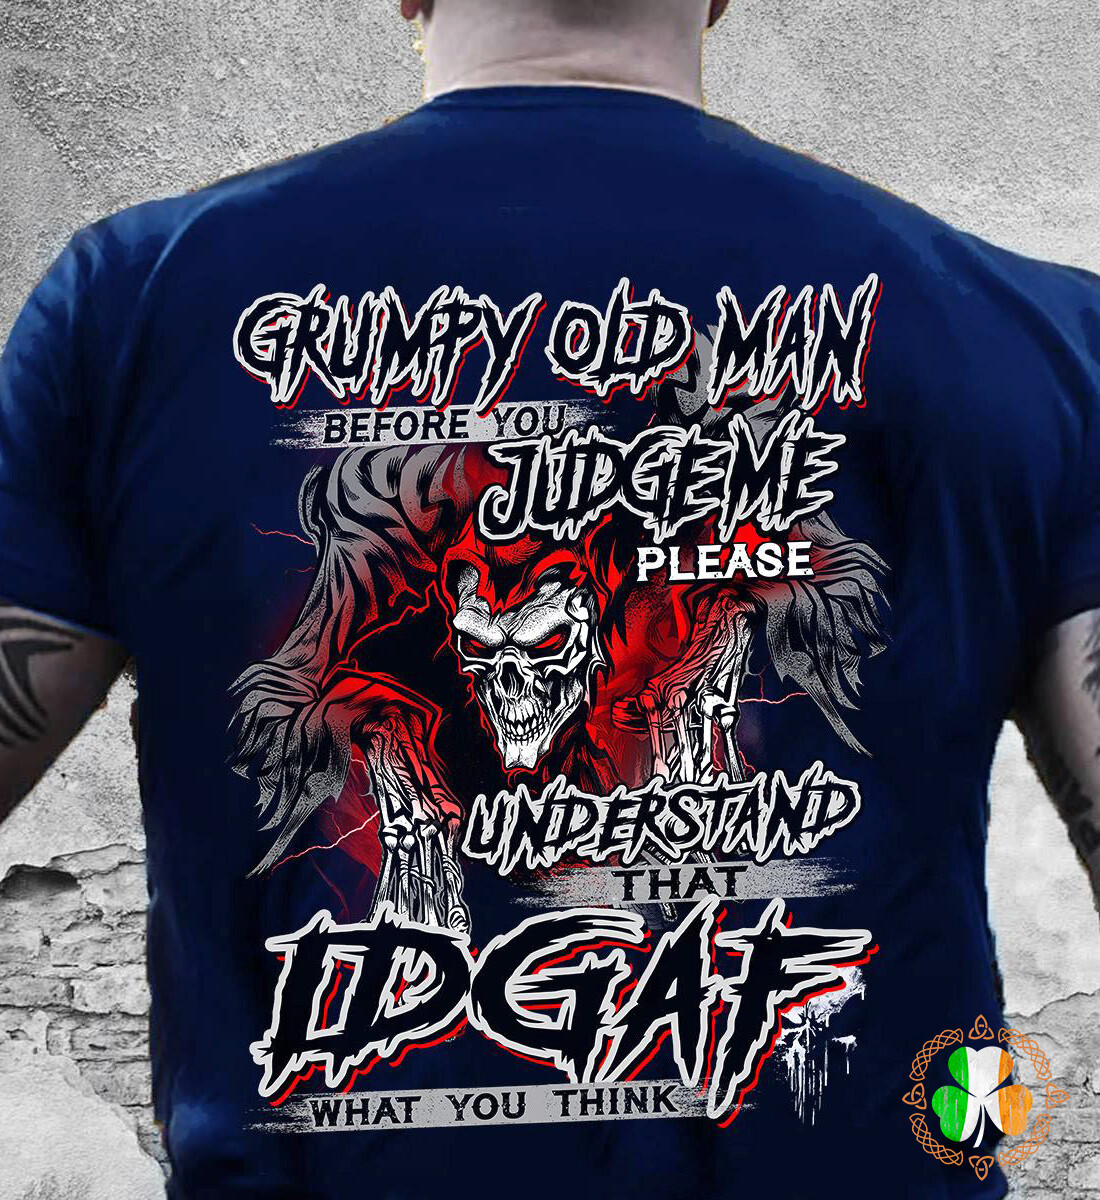 Grumpy old man before you judgeme please understand that idgaf what do you think shirt